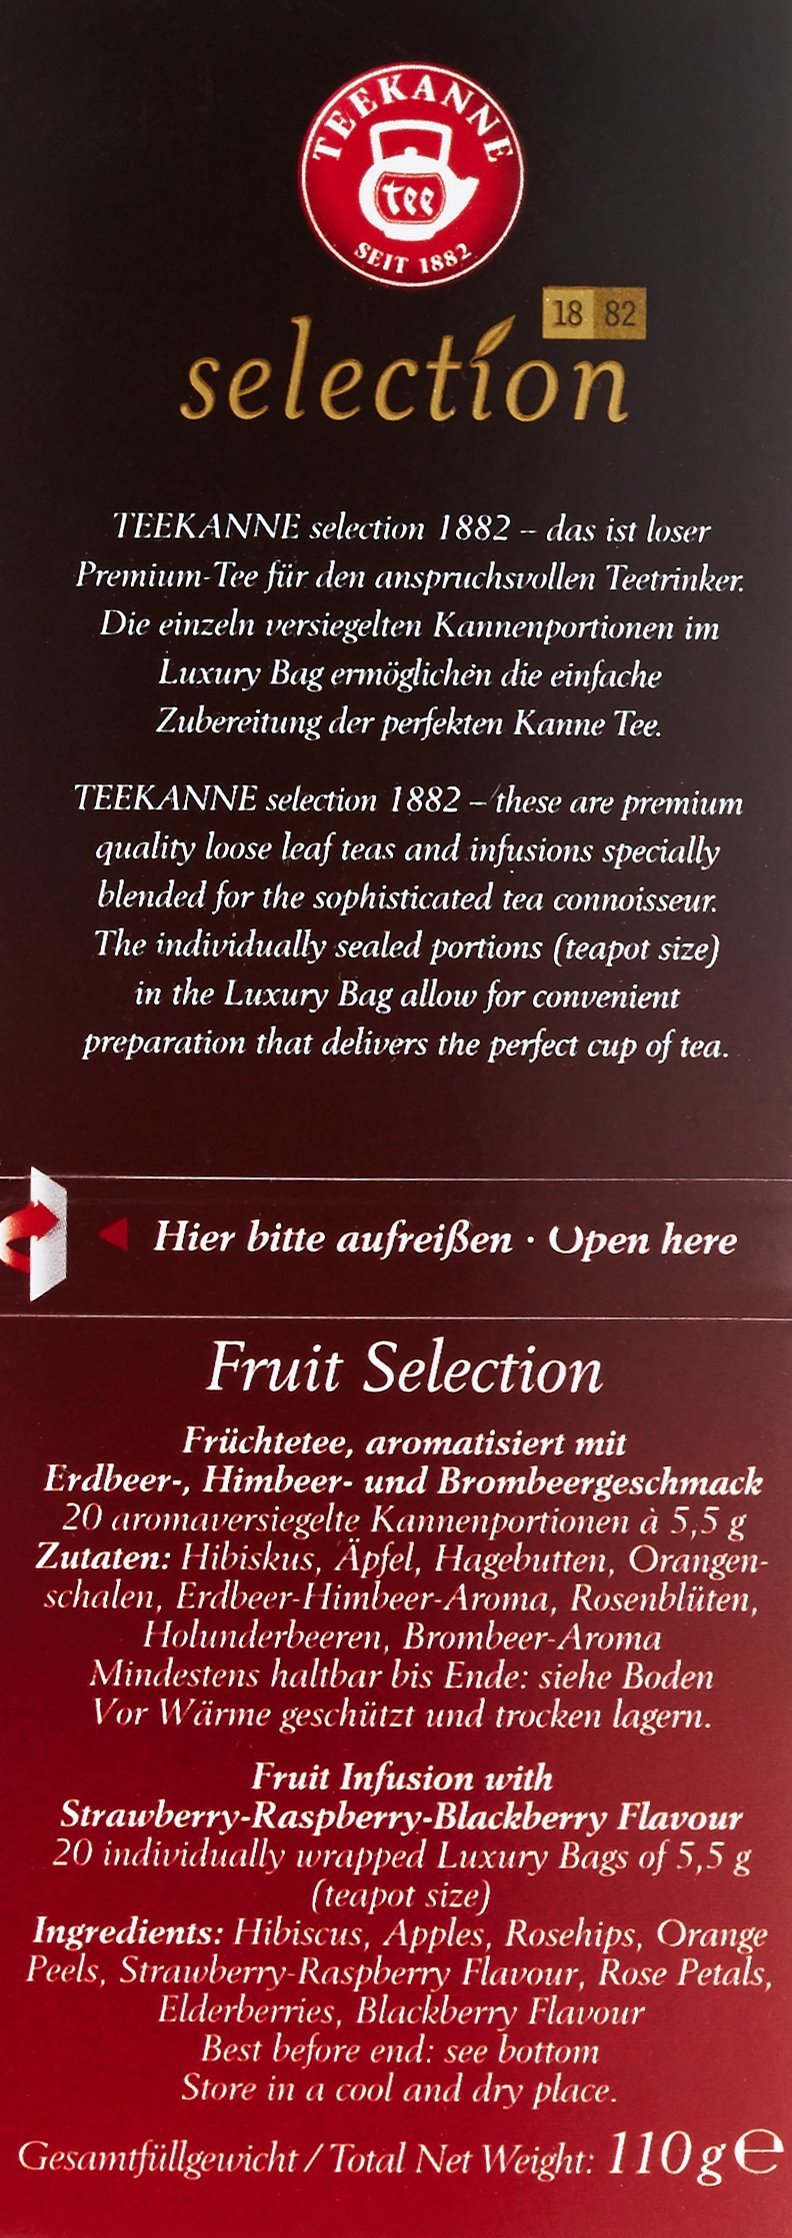 Teekanne-Selection-1882-im-Luxury-Bag-Fruit-Selection-fruchtig-frisch-20-Portionen-1er-Pack-1-x-110-g